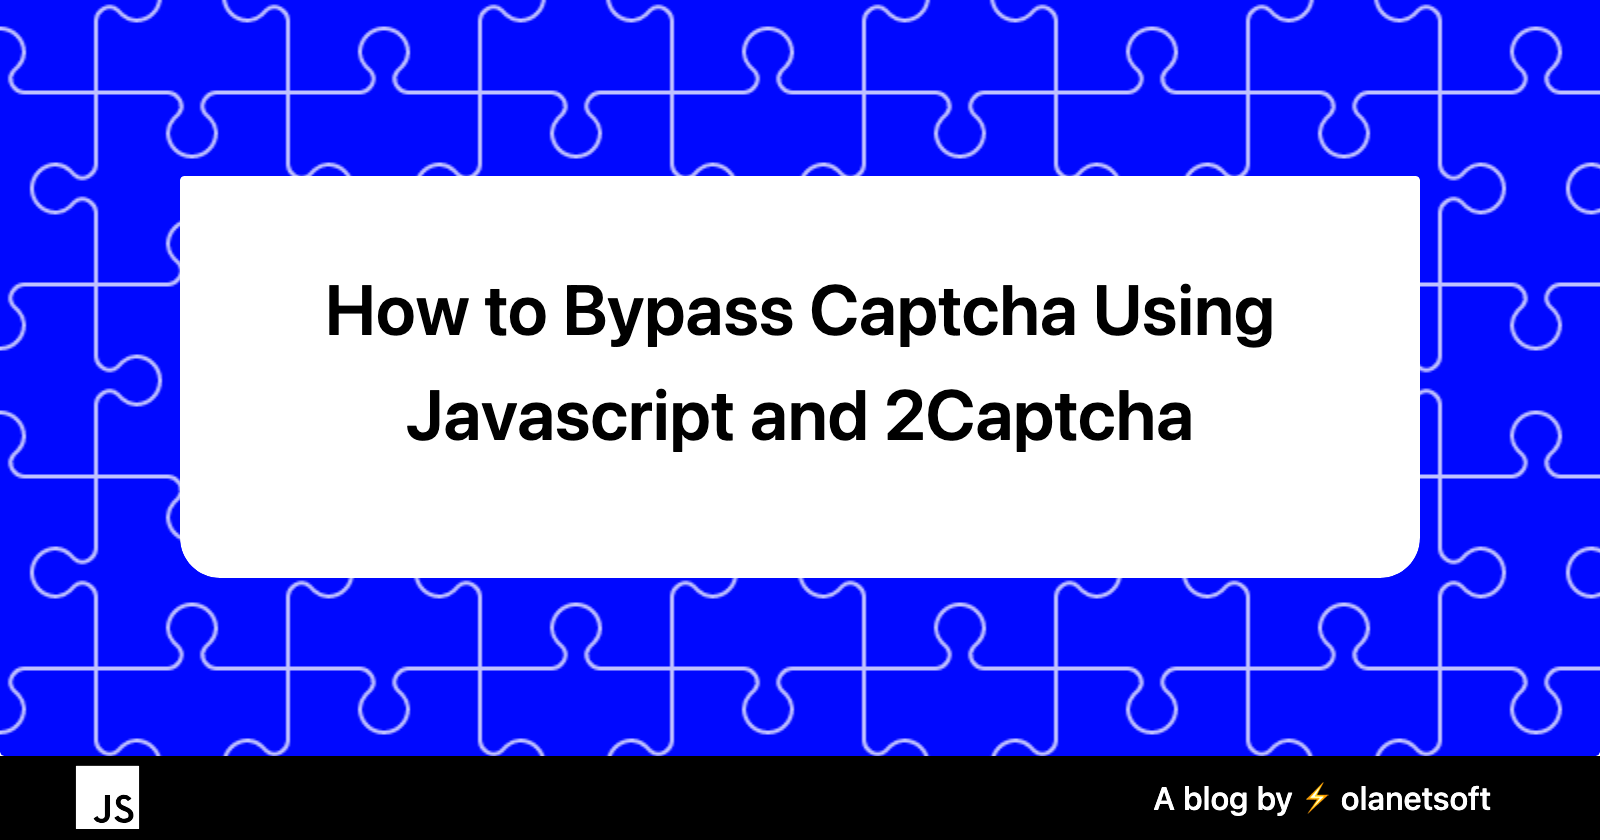 How to Bypass Captcha Using Javascript and 2Captcha